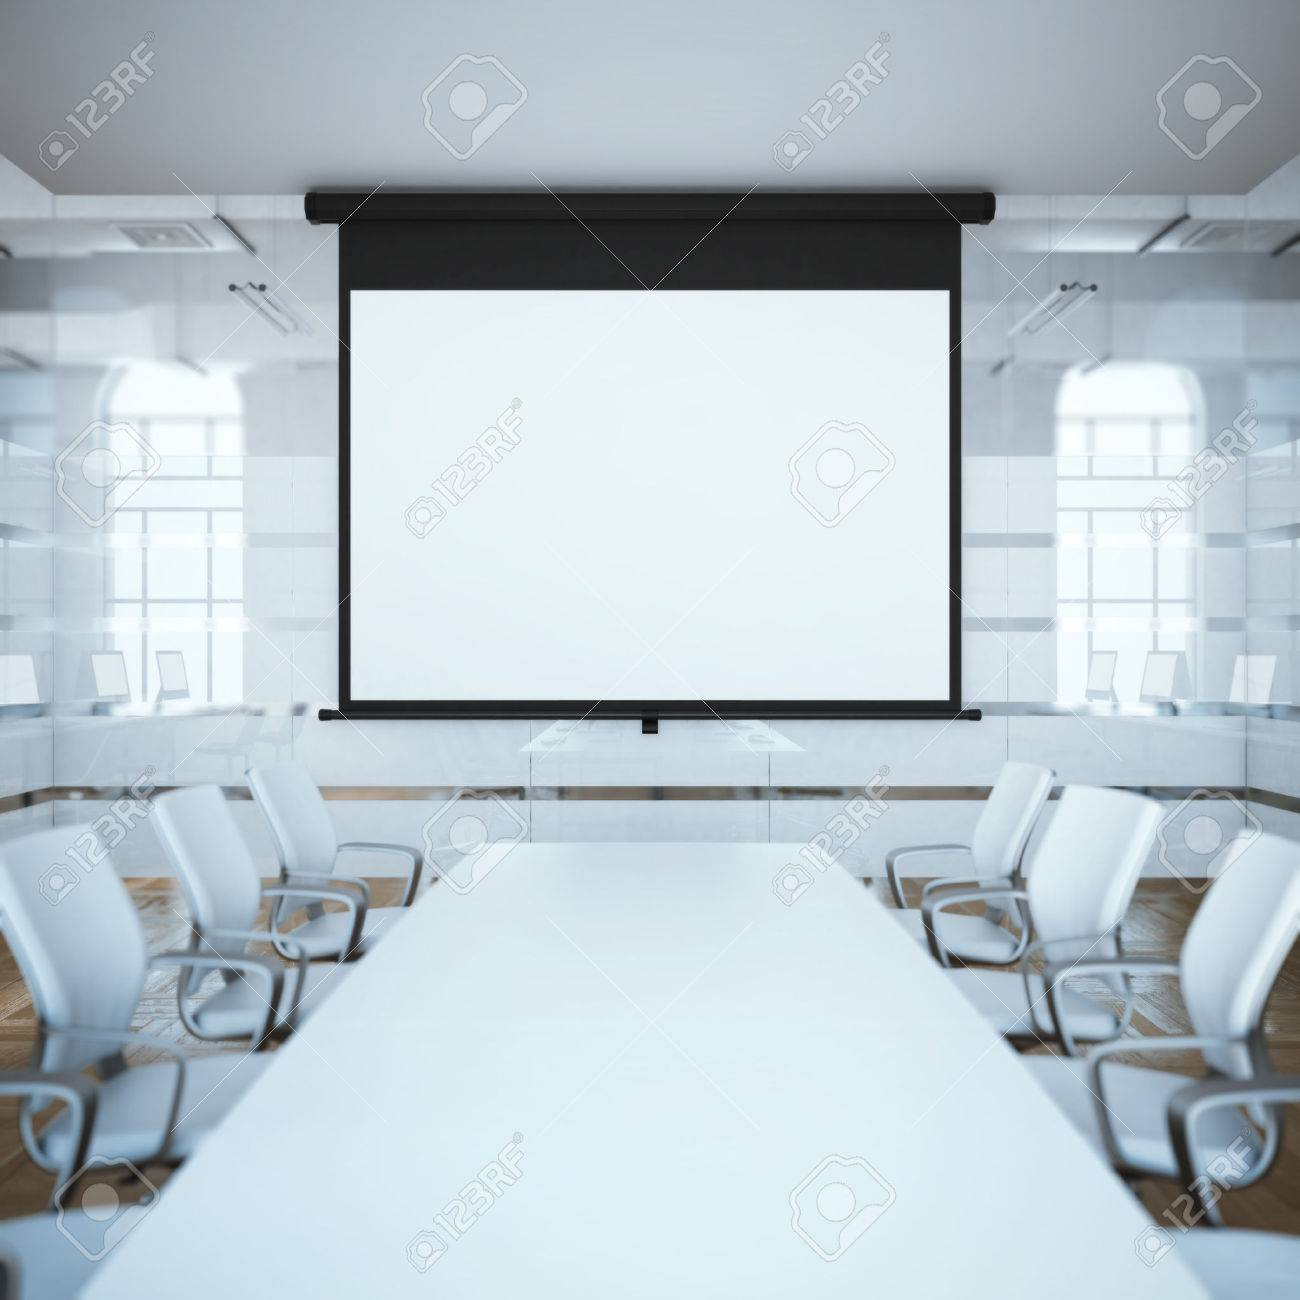 t to regular special projection theater trends enjoy two you have how page choose room digital home stewartfilm won that one just if projector screen not a only in need does as